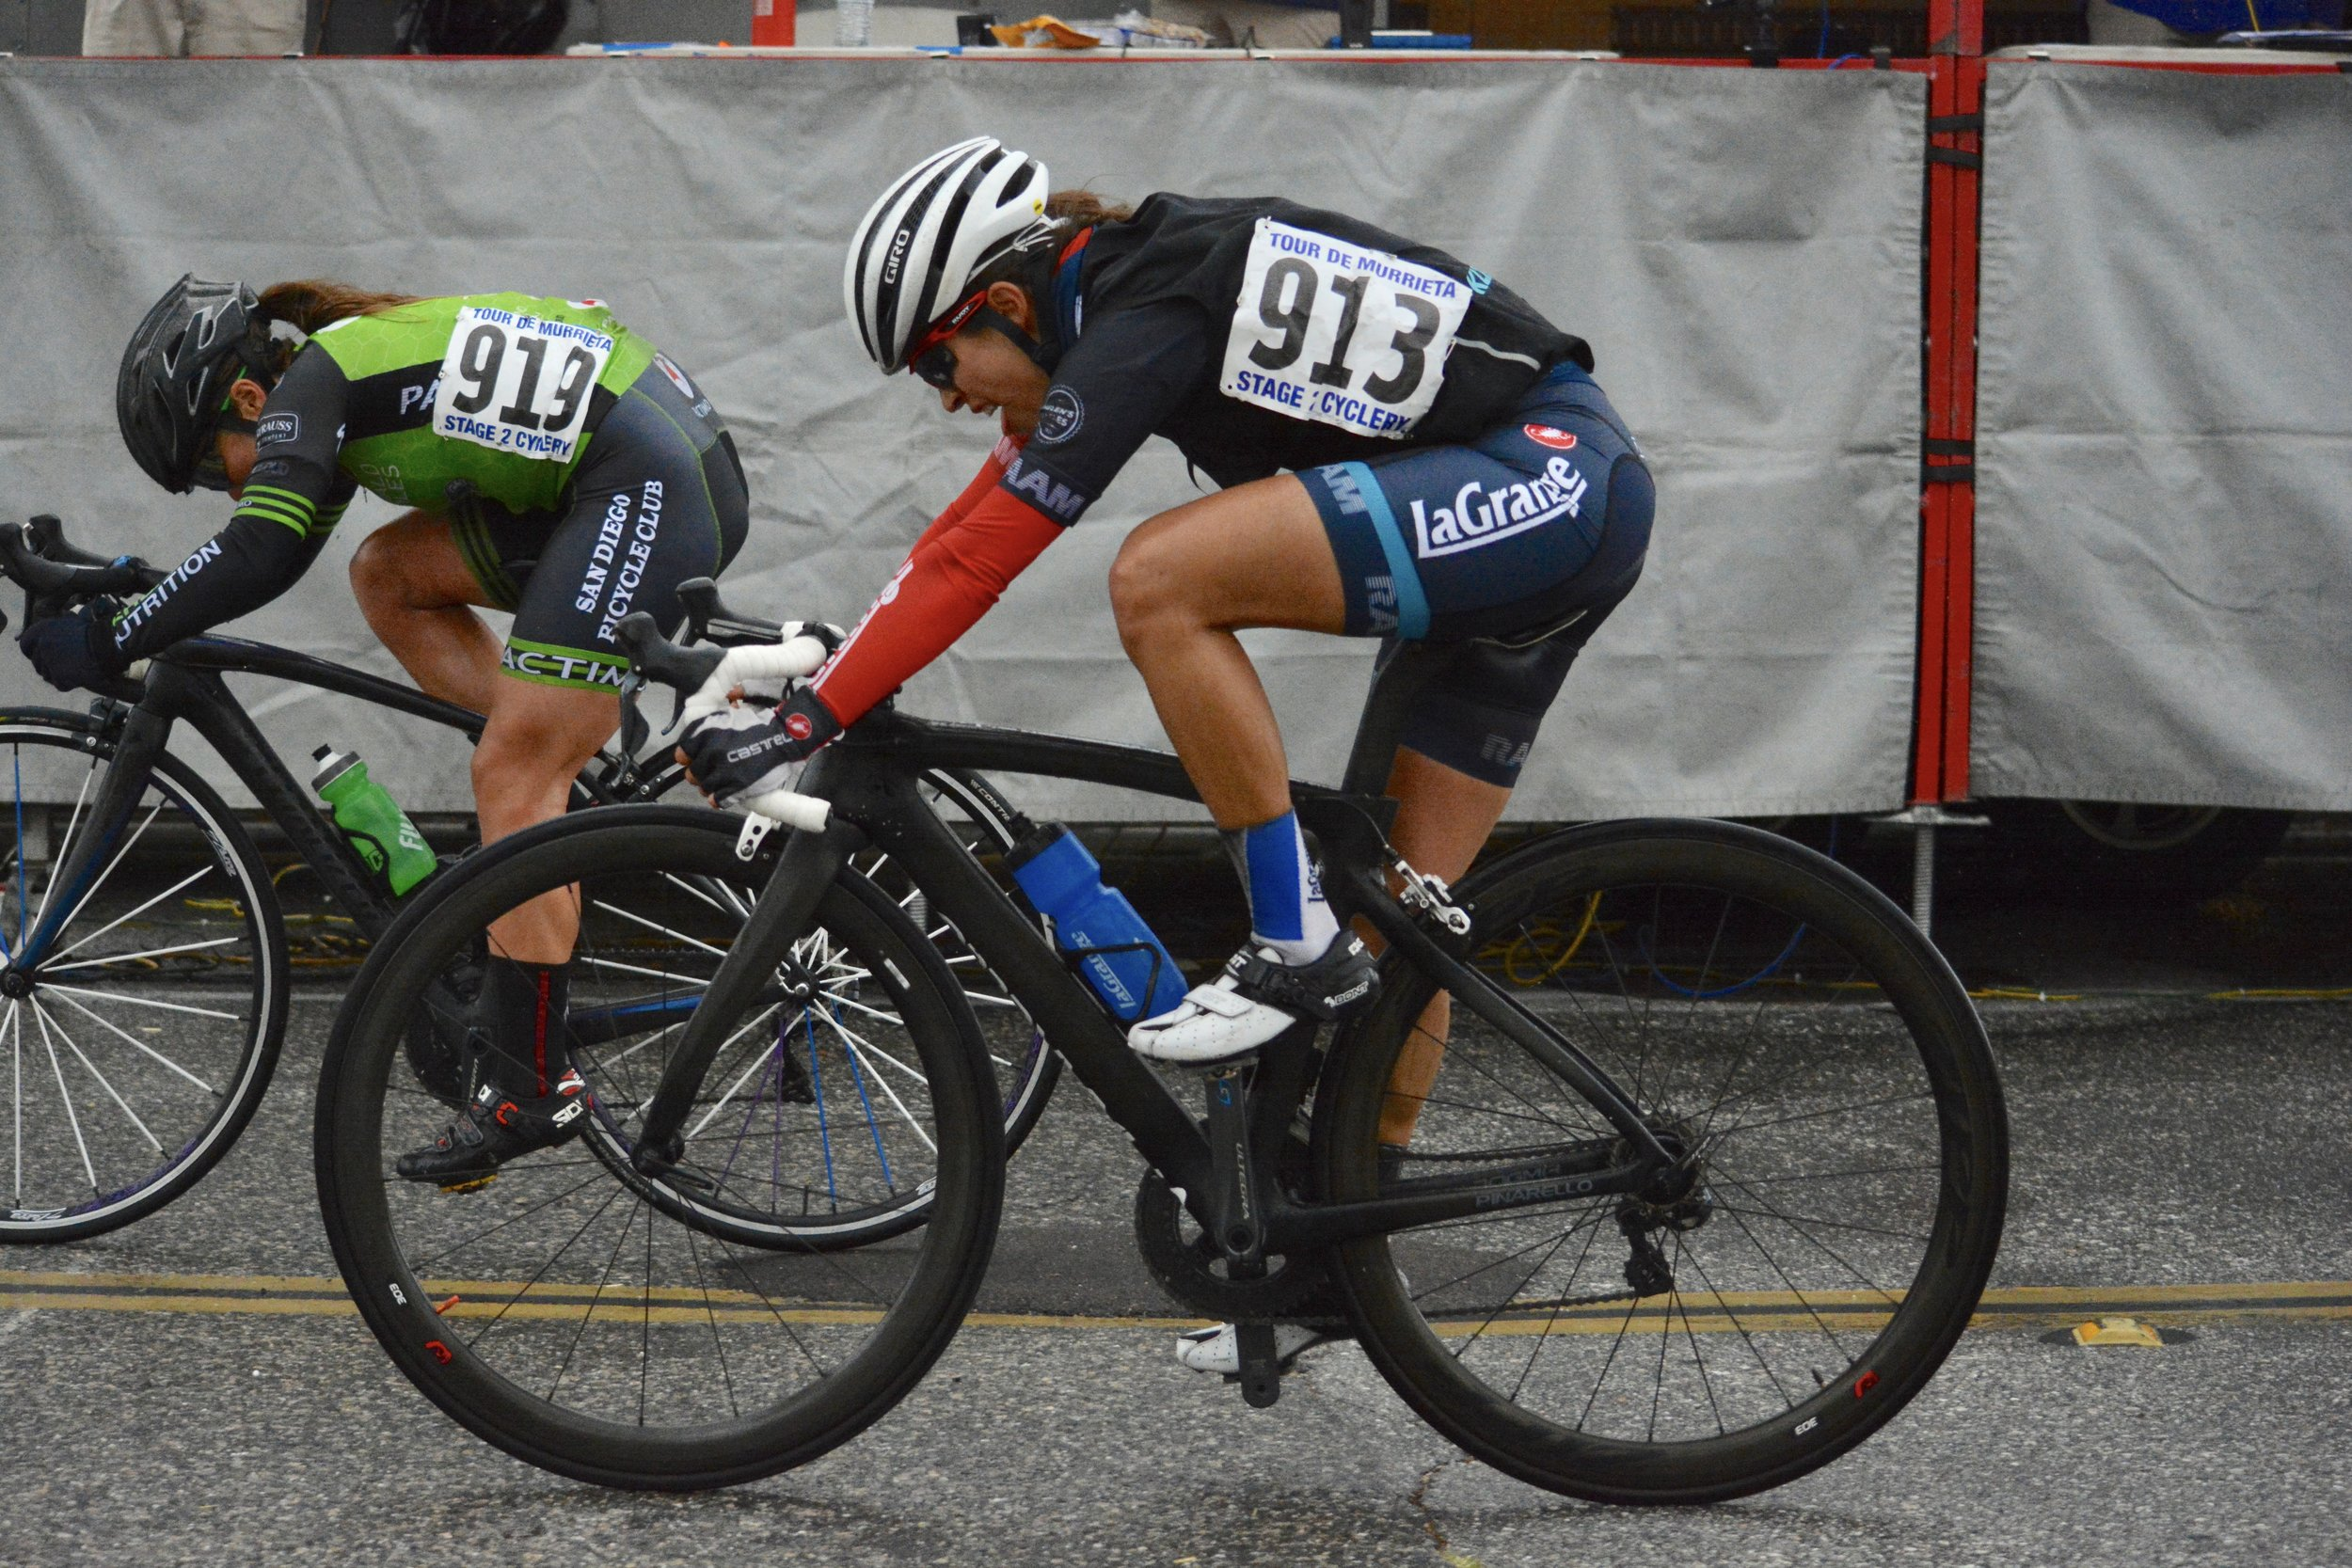 Lizbeth giving it everything in the final sprint of the crit at the Tour of Murrieta Omnium